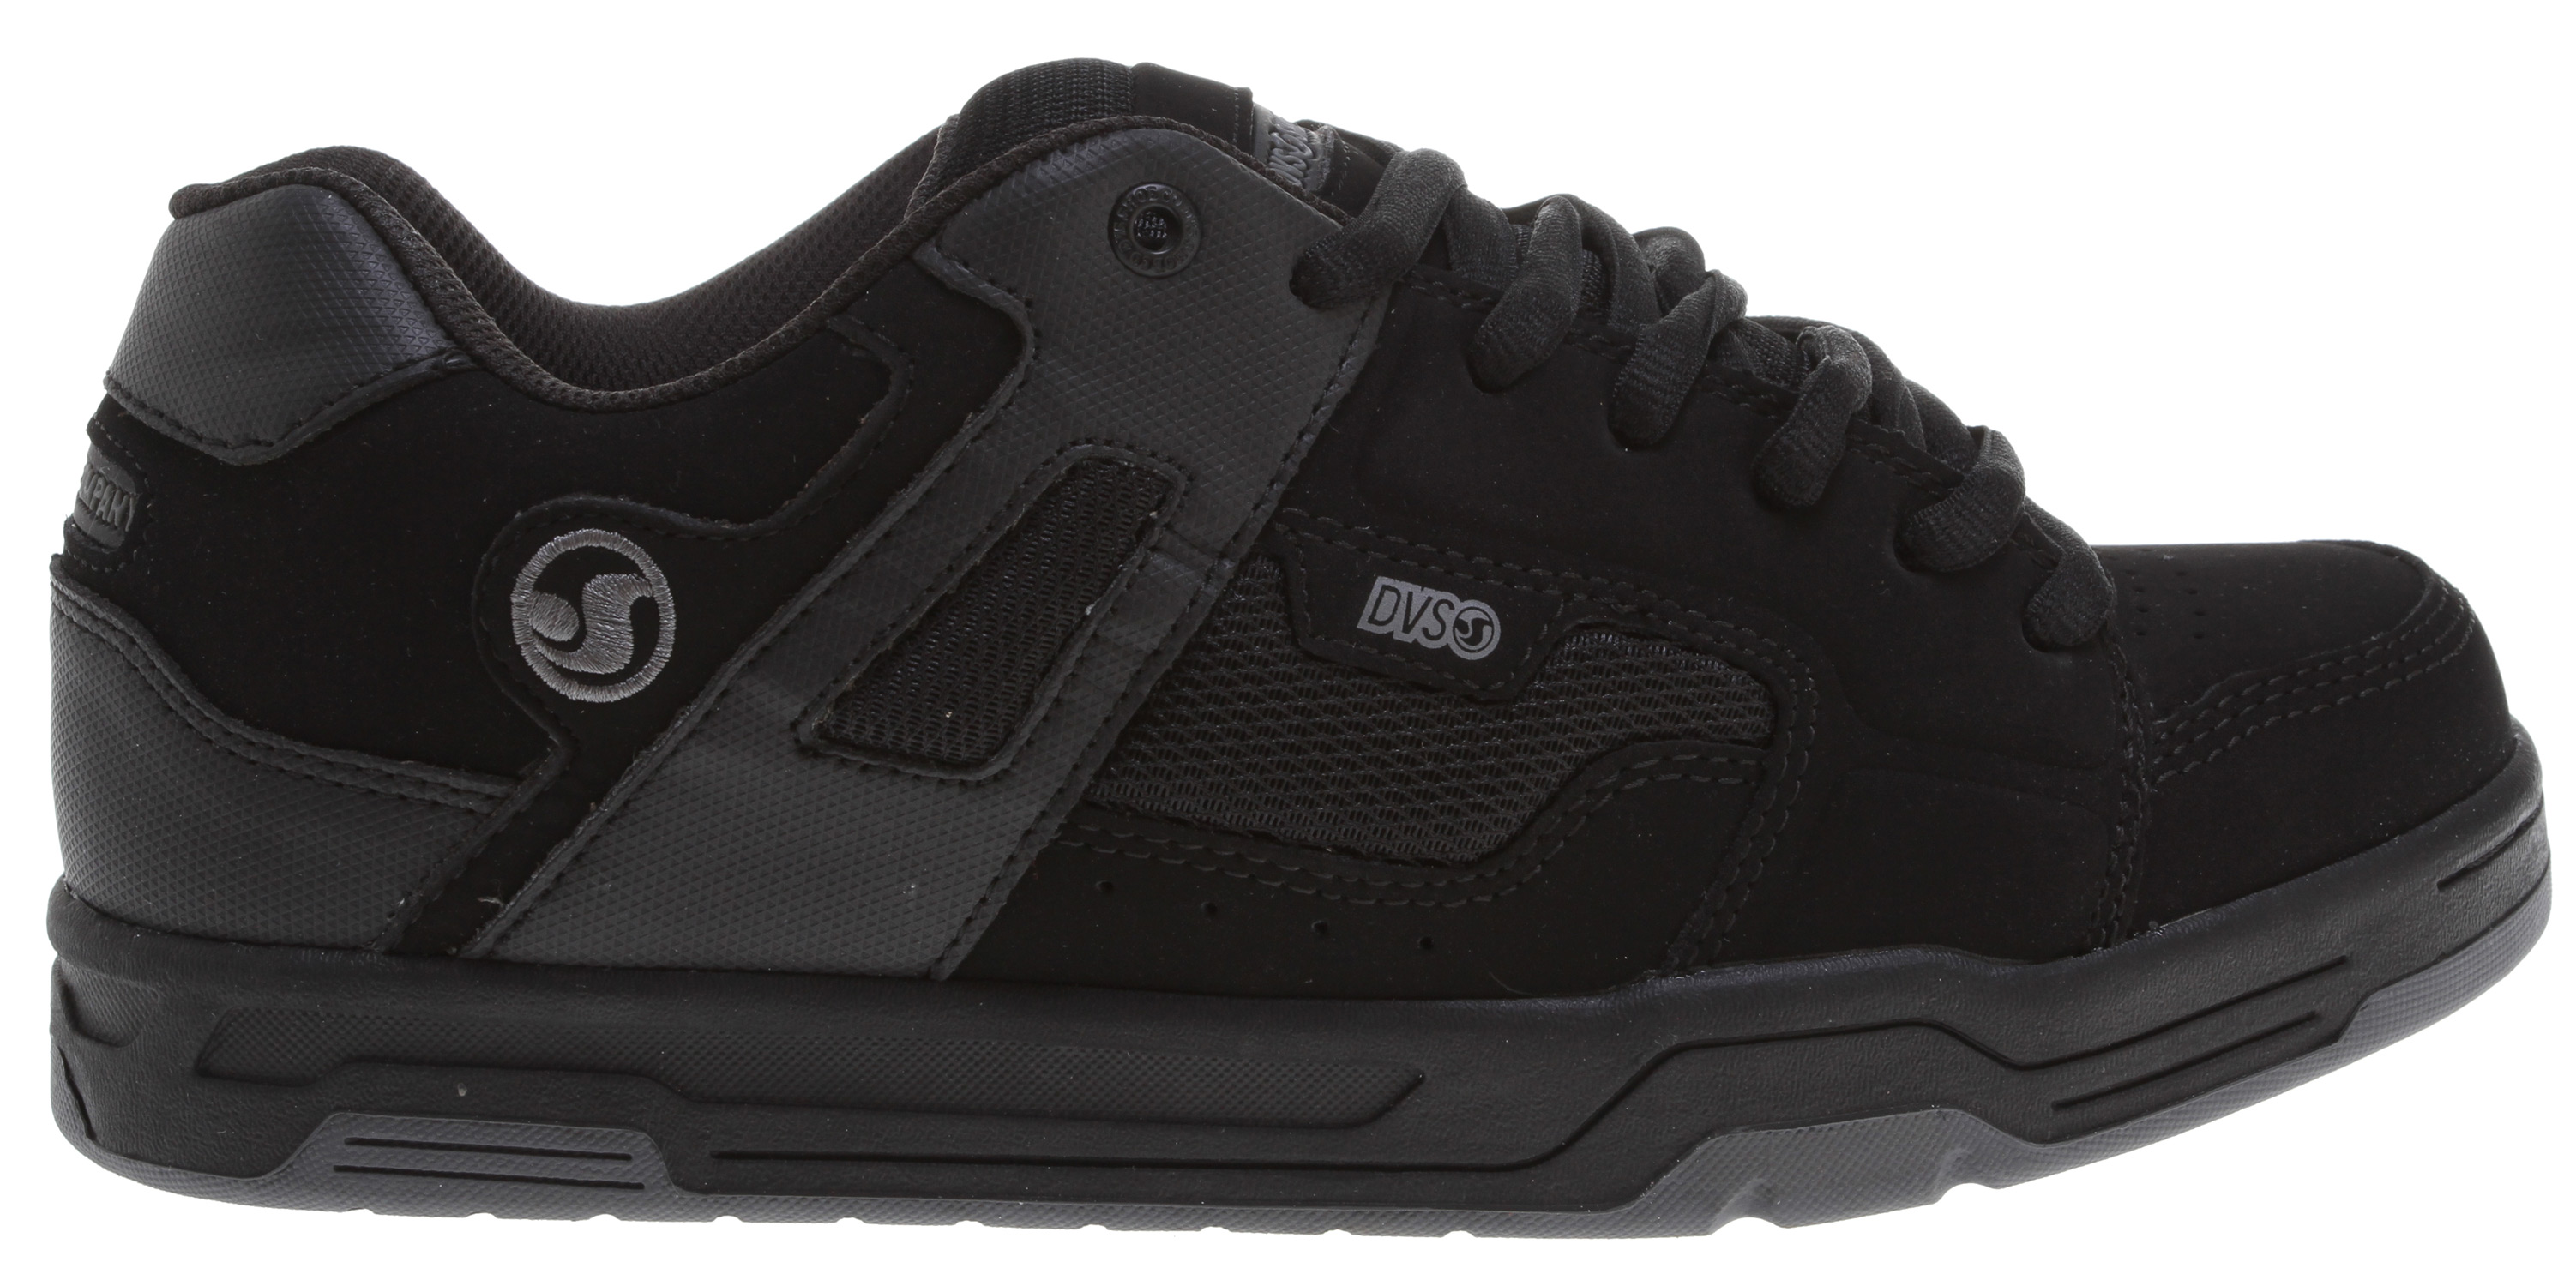 Skateboard Key Features of the DVS Enduro Skate Shoes: Triple stitch construction Open cell breathable mesh Highly flexible lasting board Lightweight flexible Perforated foam for heat reduction Non-slip outsole Contoured heel-cup sock liner - $52.95